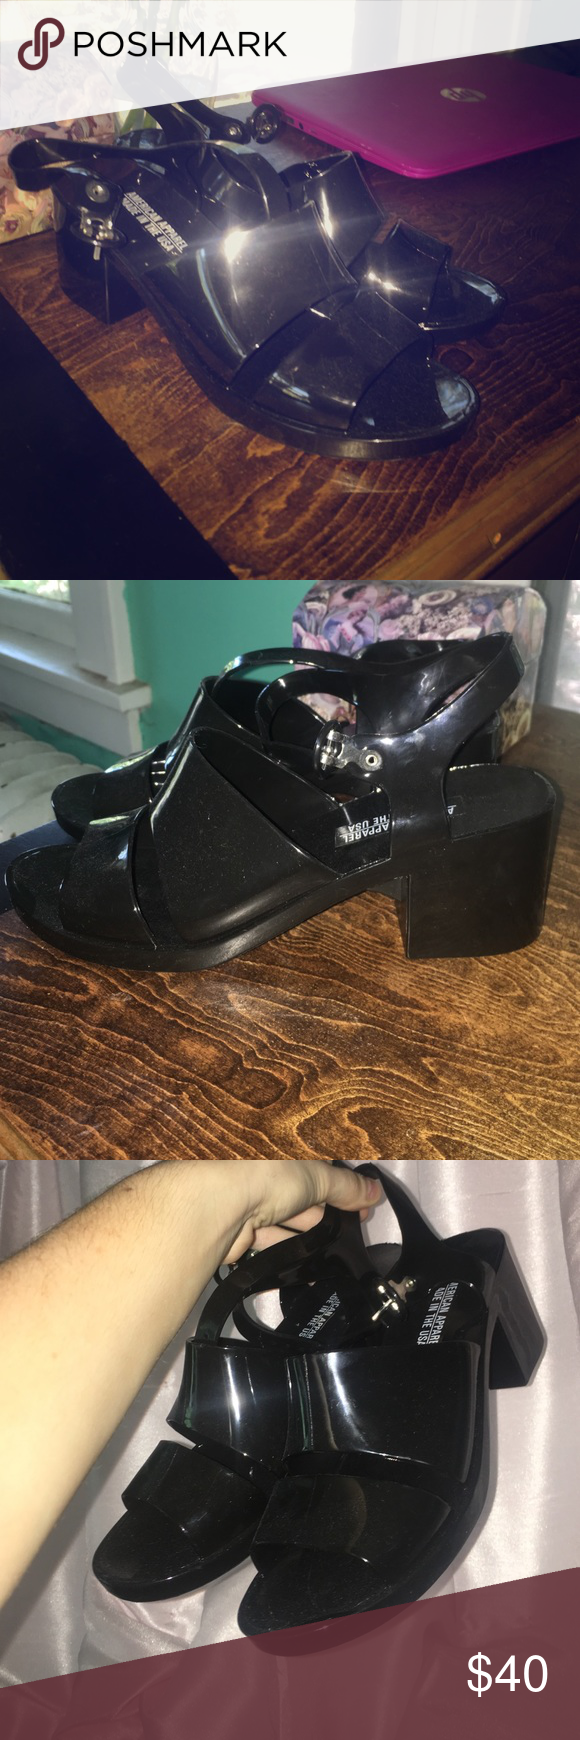 b9f19c453ba5 American Apparel Classic Jelly Heels in Black! Never worn! Recently got a  size too small and could never fit them. They re in great shape.